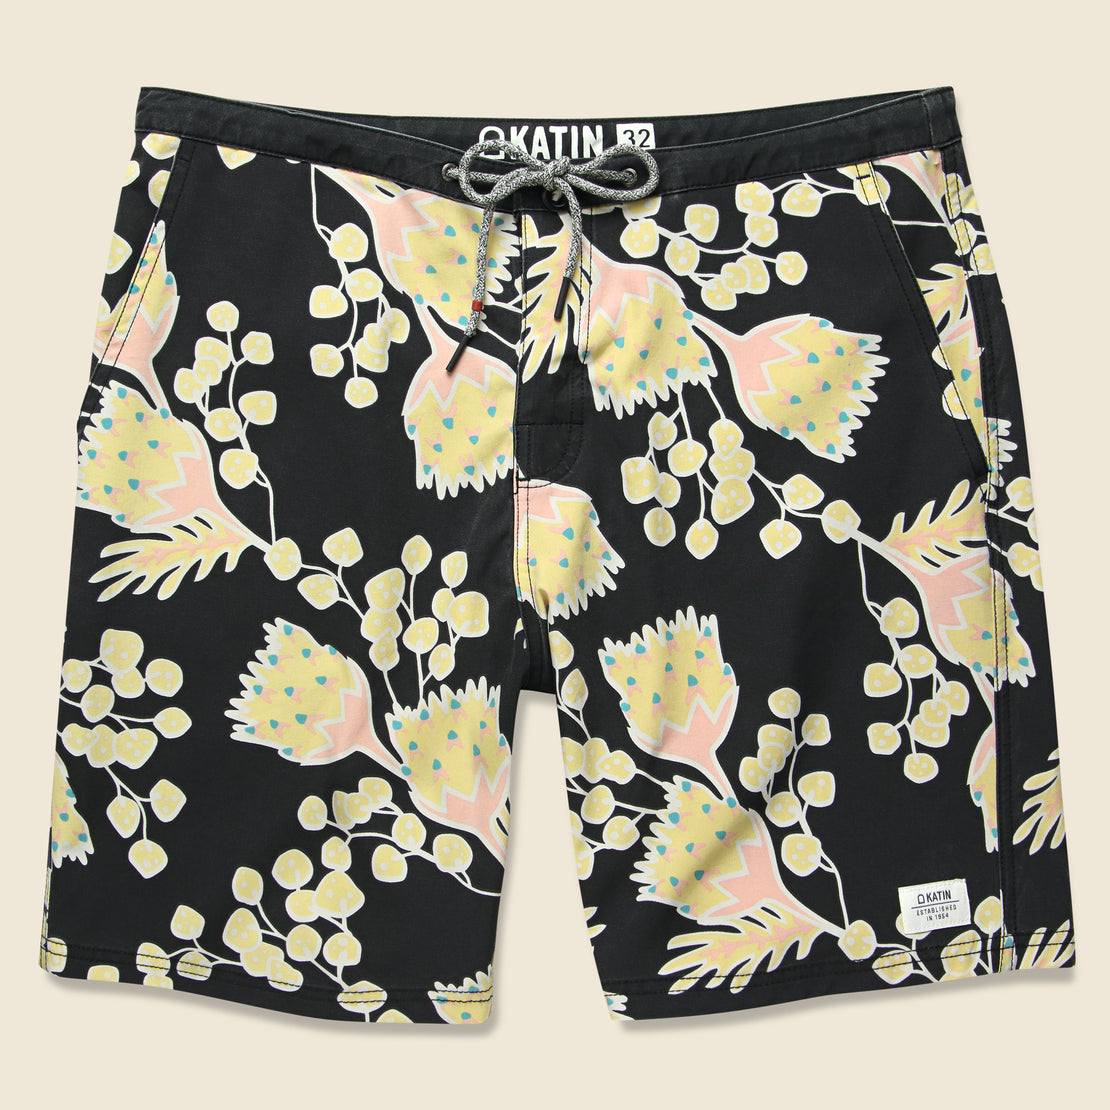 Katin Outline Boardshort - Black